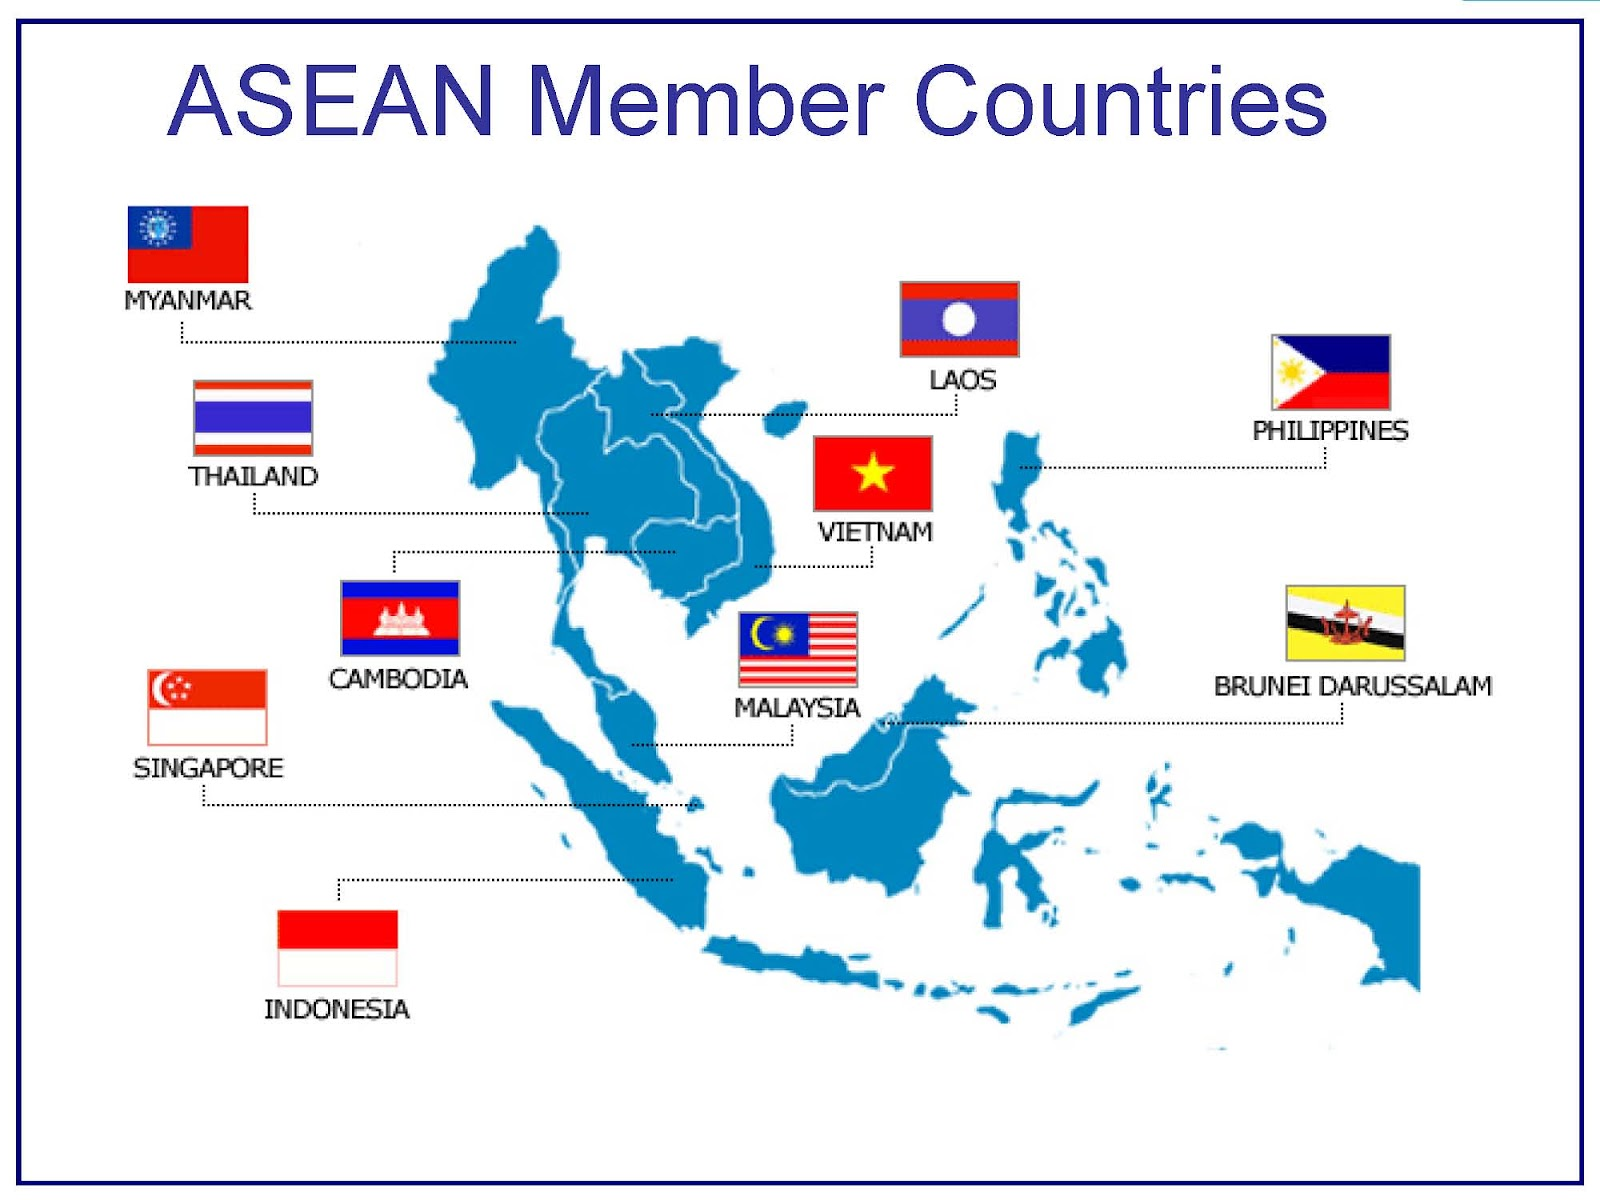 General khowledge, asean summit 2017, asean summit, asean members, asean 2017, asean countries list, asean in hindi, asean youth summit 2017, asean meaning, asean countries, asean and india